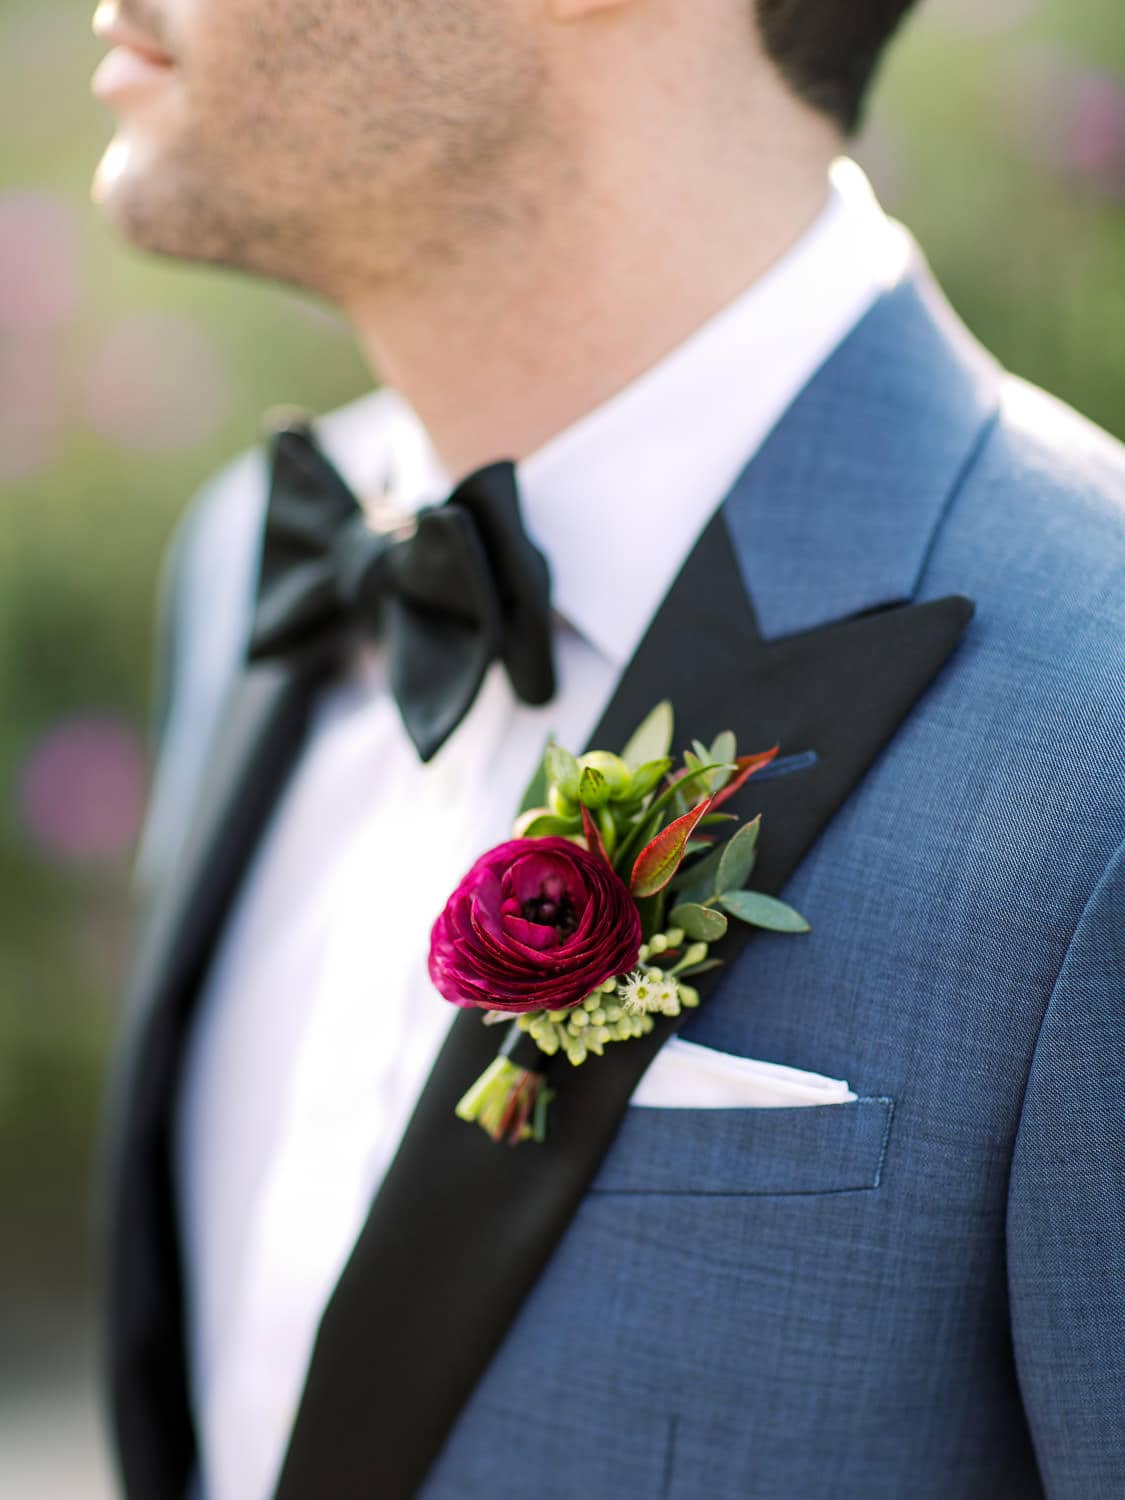 Groom-boutonnière-Flower-Inspiration-Greg-Ross